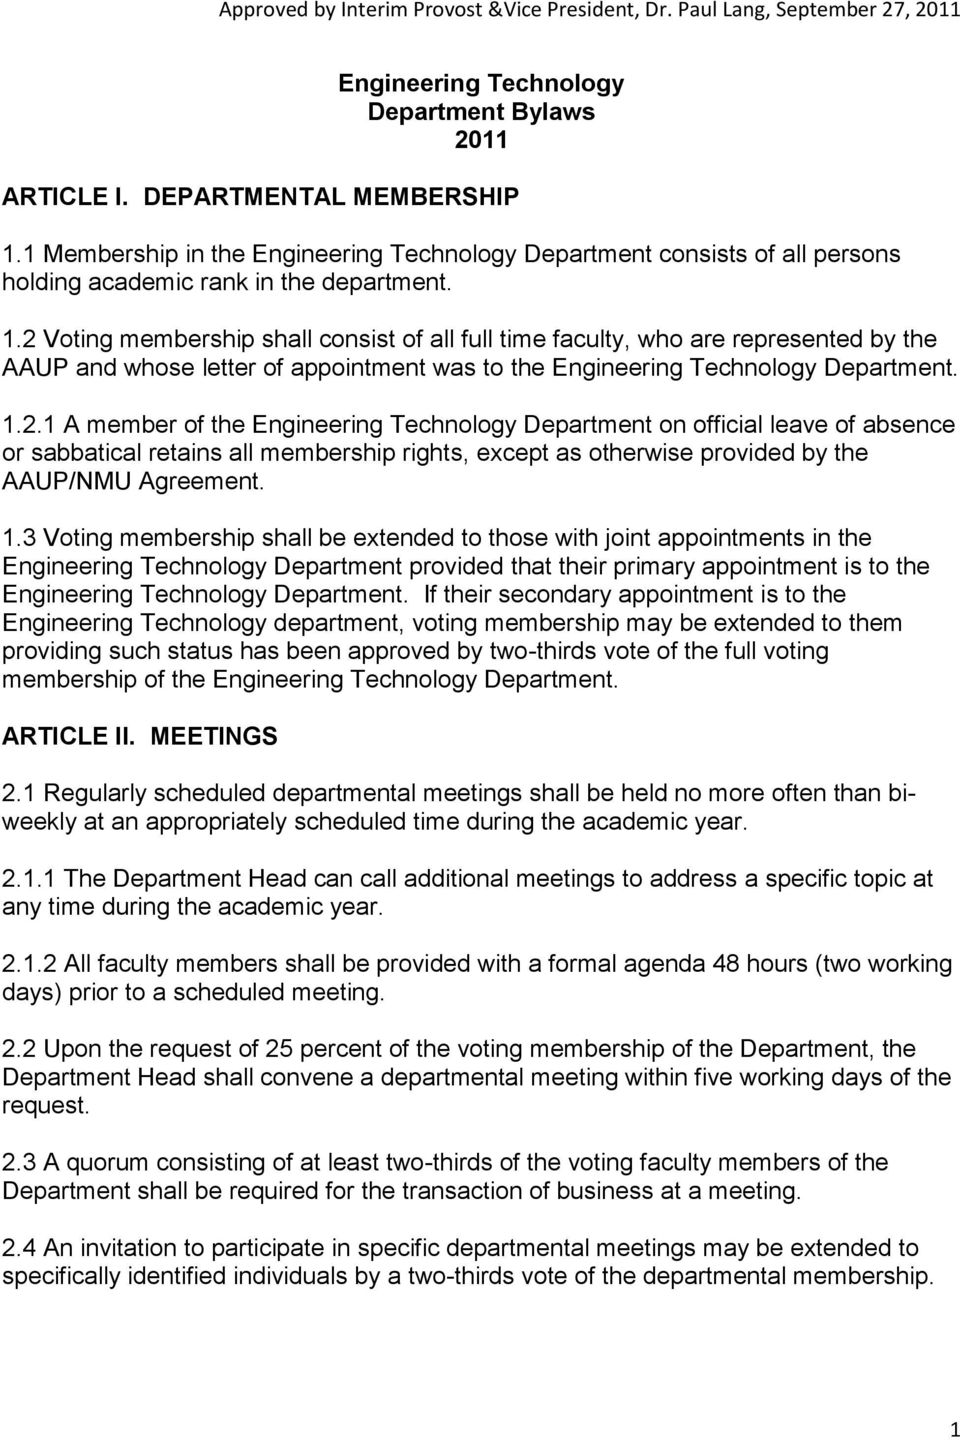 2 Voting membership shall consist of all full time faculty, who are represented by the AAUP and whose letter of appointment was to the Engineering Technology Department. 1.2.1 A member of the Engineering Technology Department on official leave of absence or sabbatical retains all membership rights, except as otherwise provided by the AAUP/NMU Agreement.